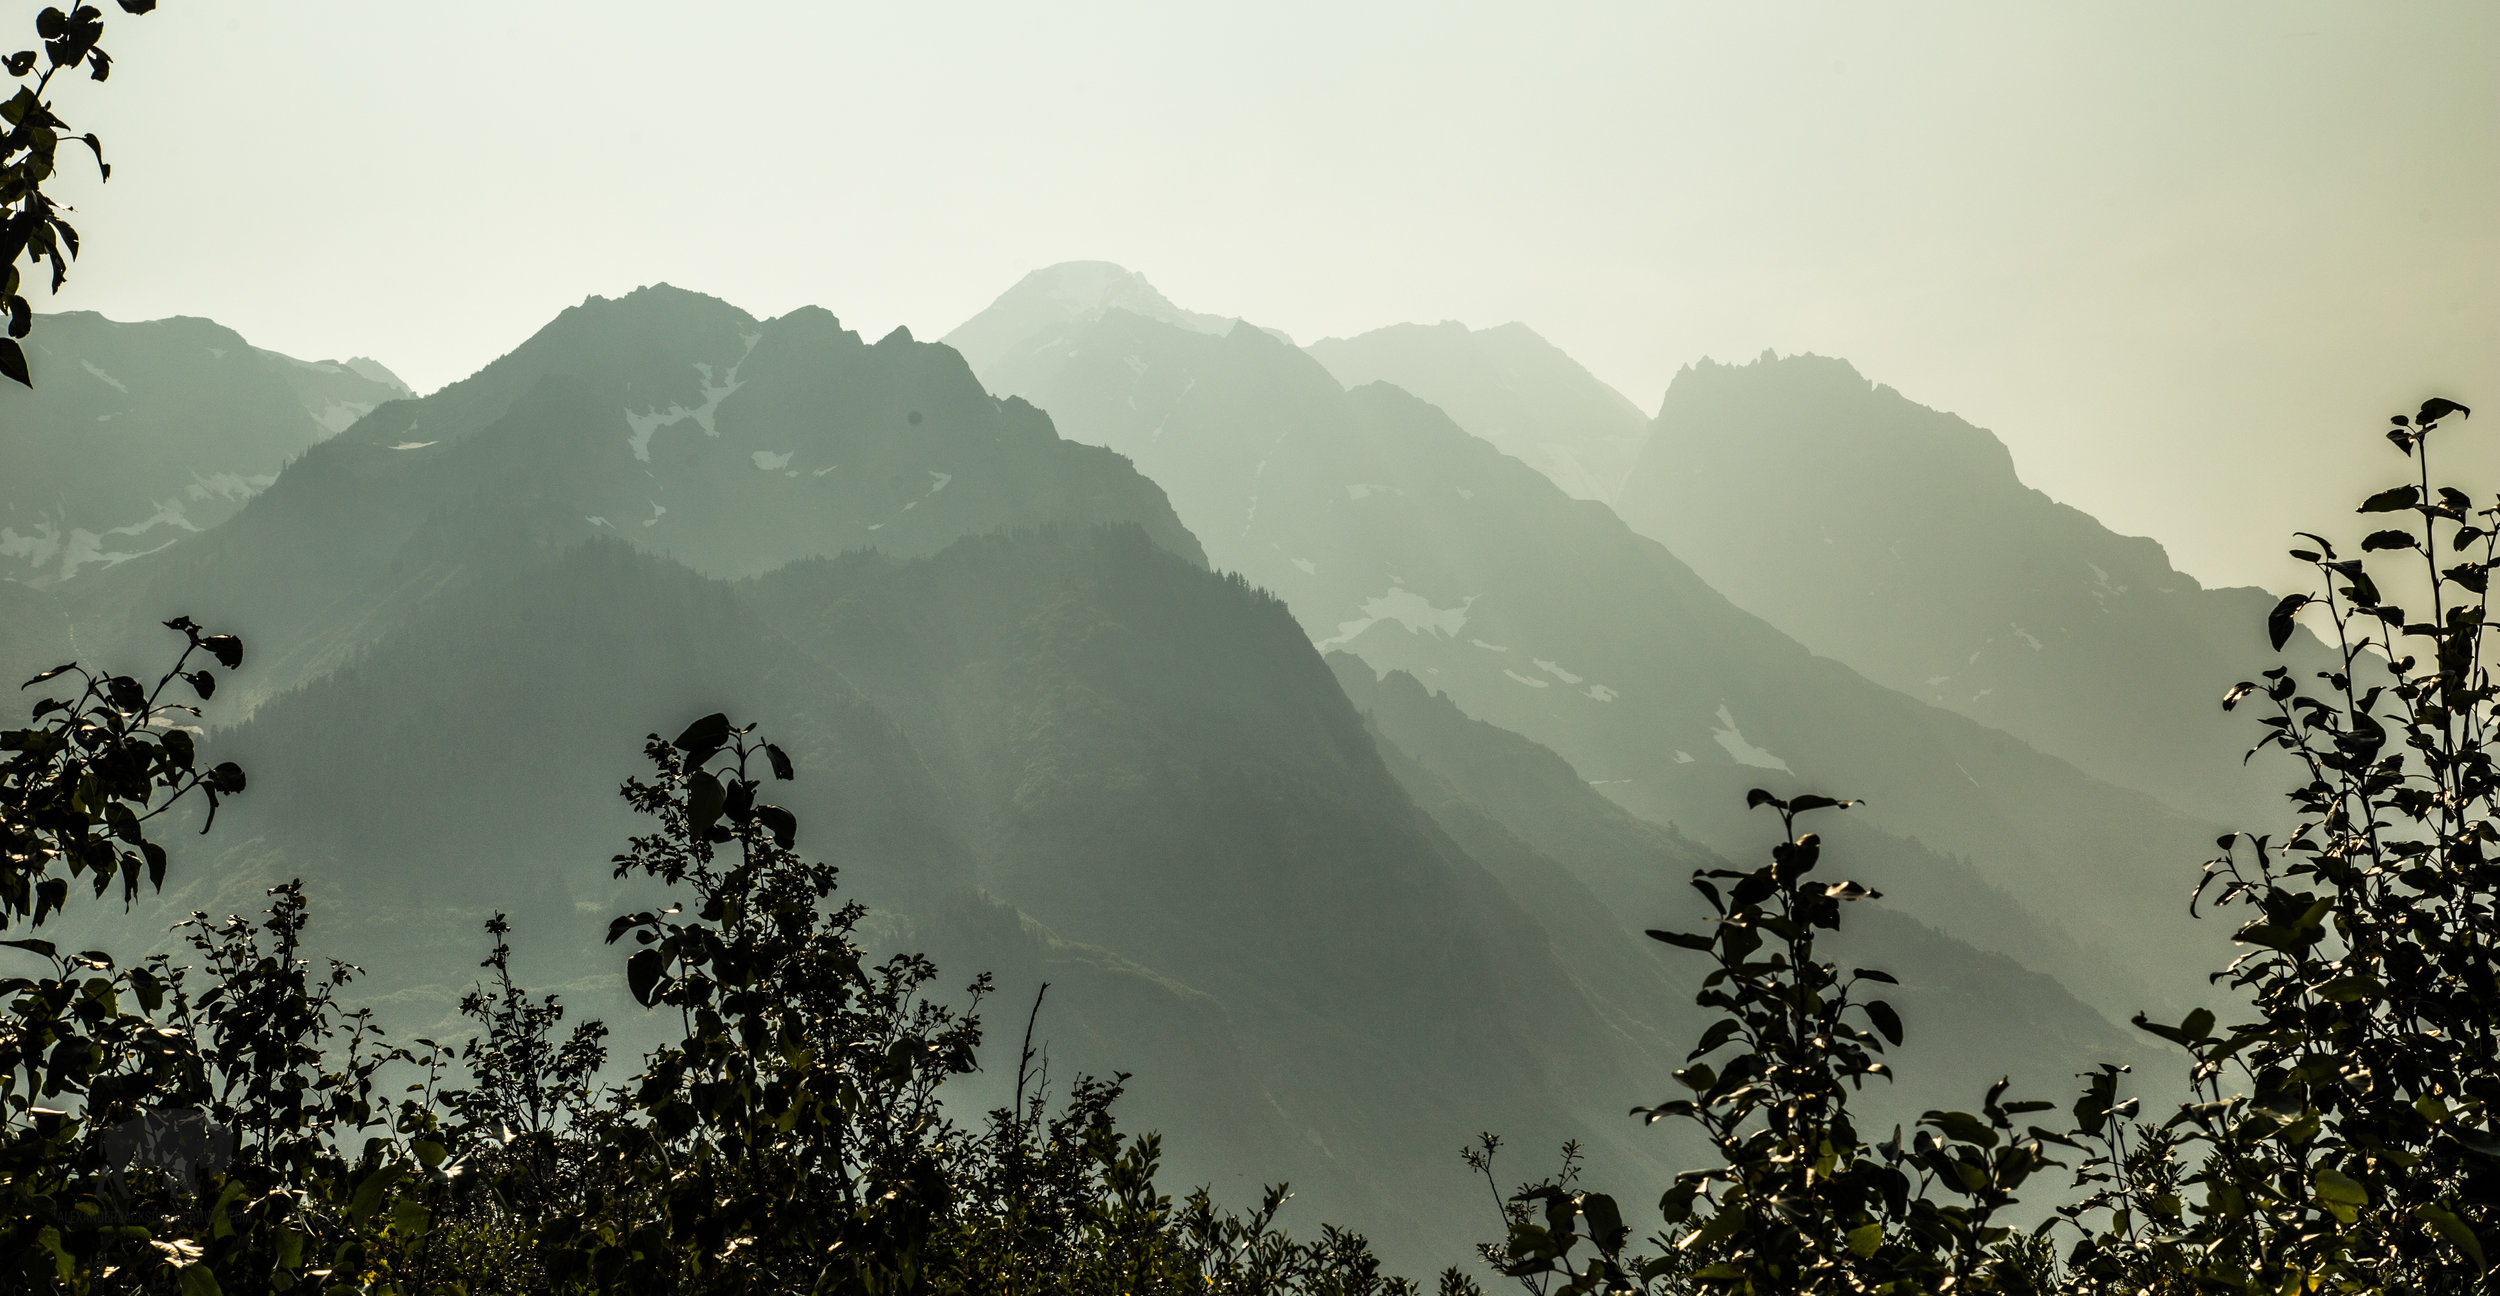 A little haze from local forest fires making for some interesting views.